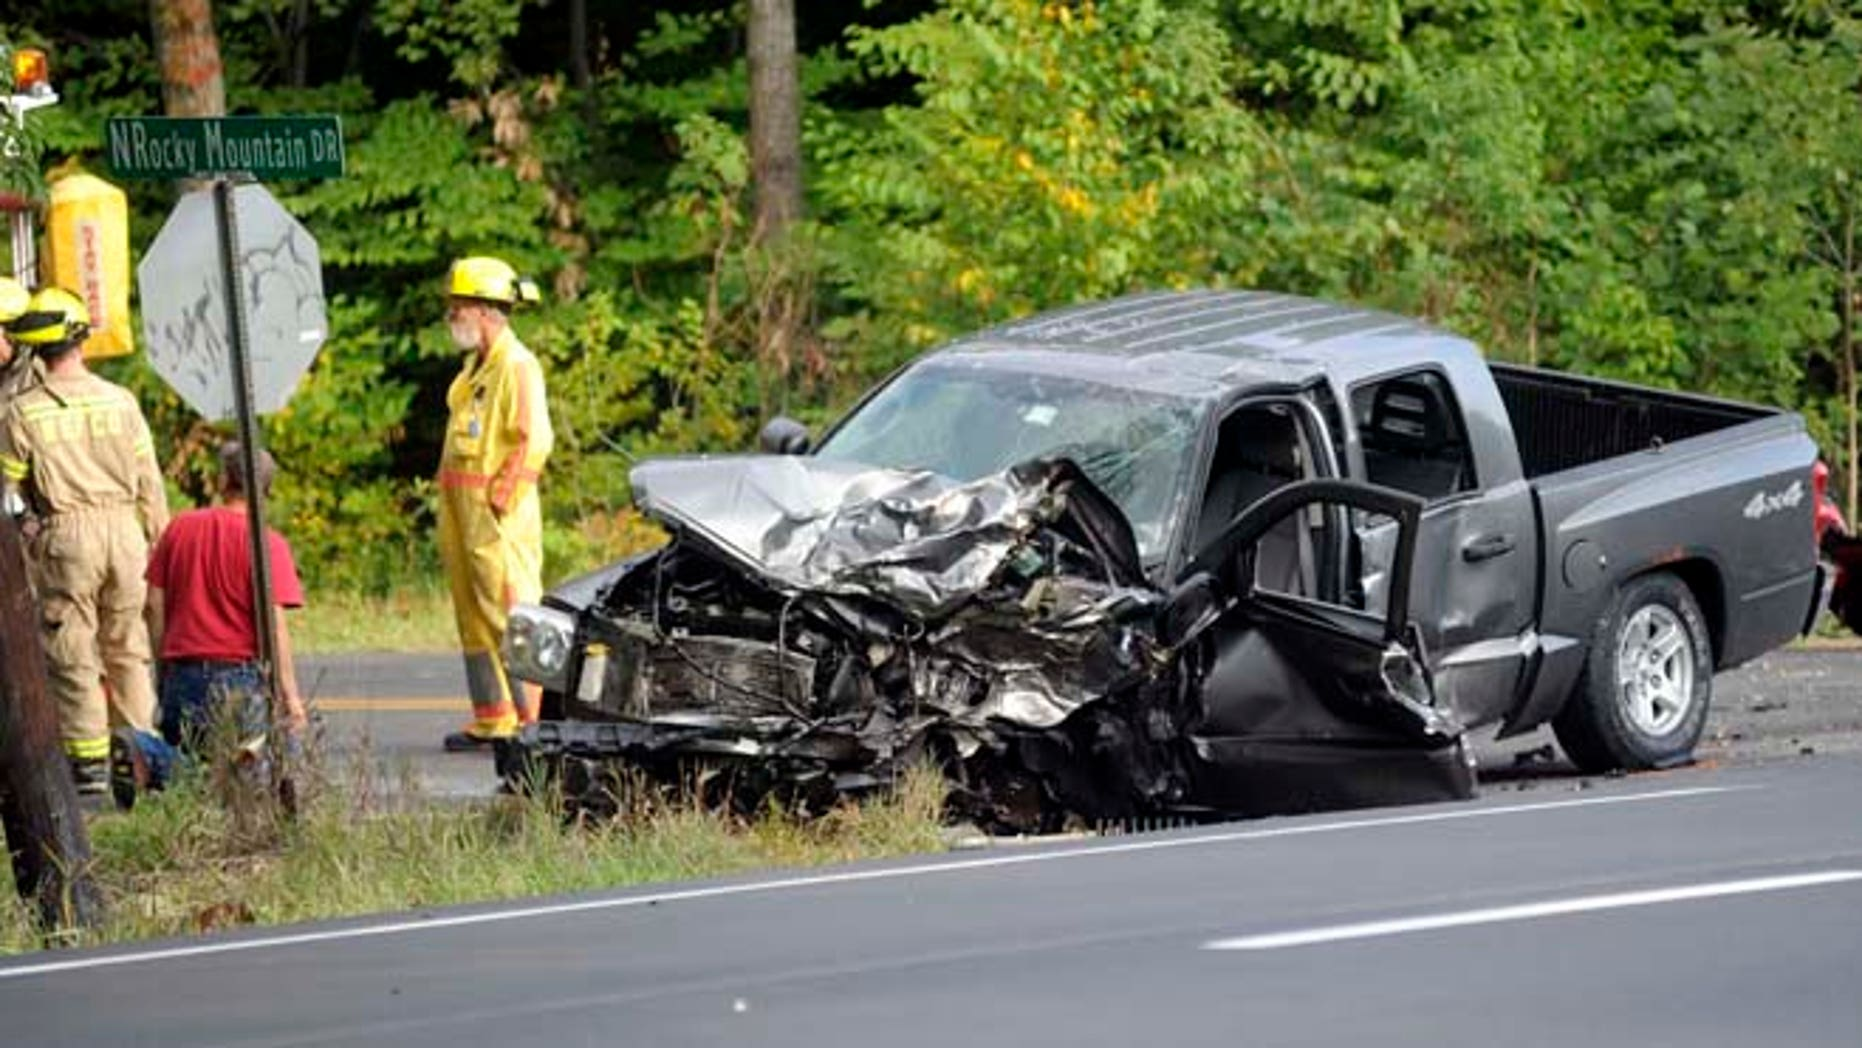 Sept. 20, 2014: Officers stand near the scene of a fatal car accident on Route 115 in Effort, Pa. (AP/Pocono Record, Keith R. Stevenson)